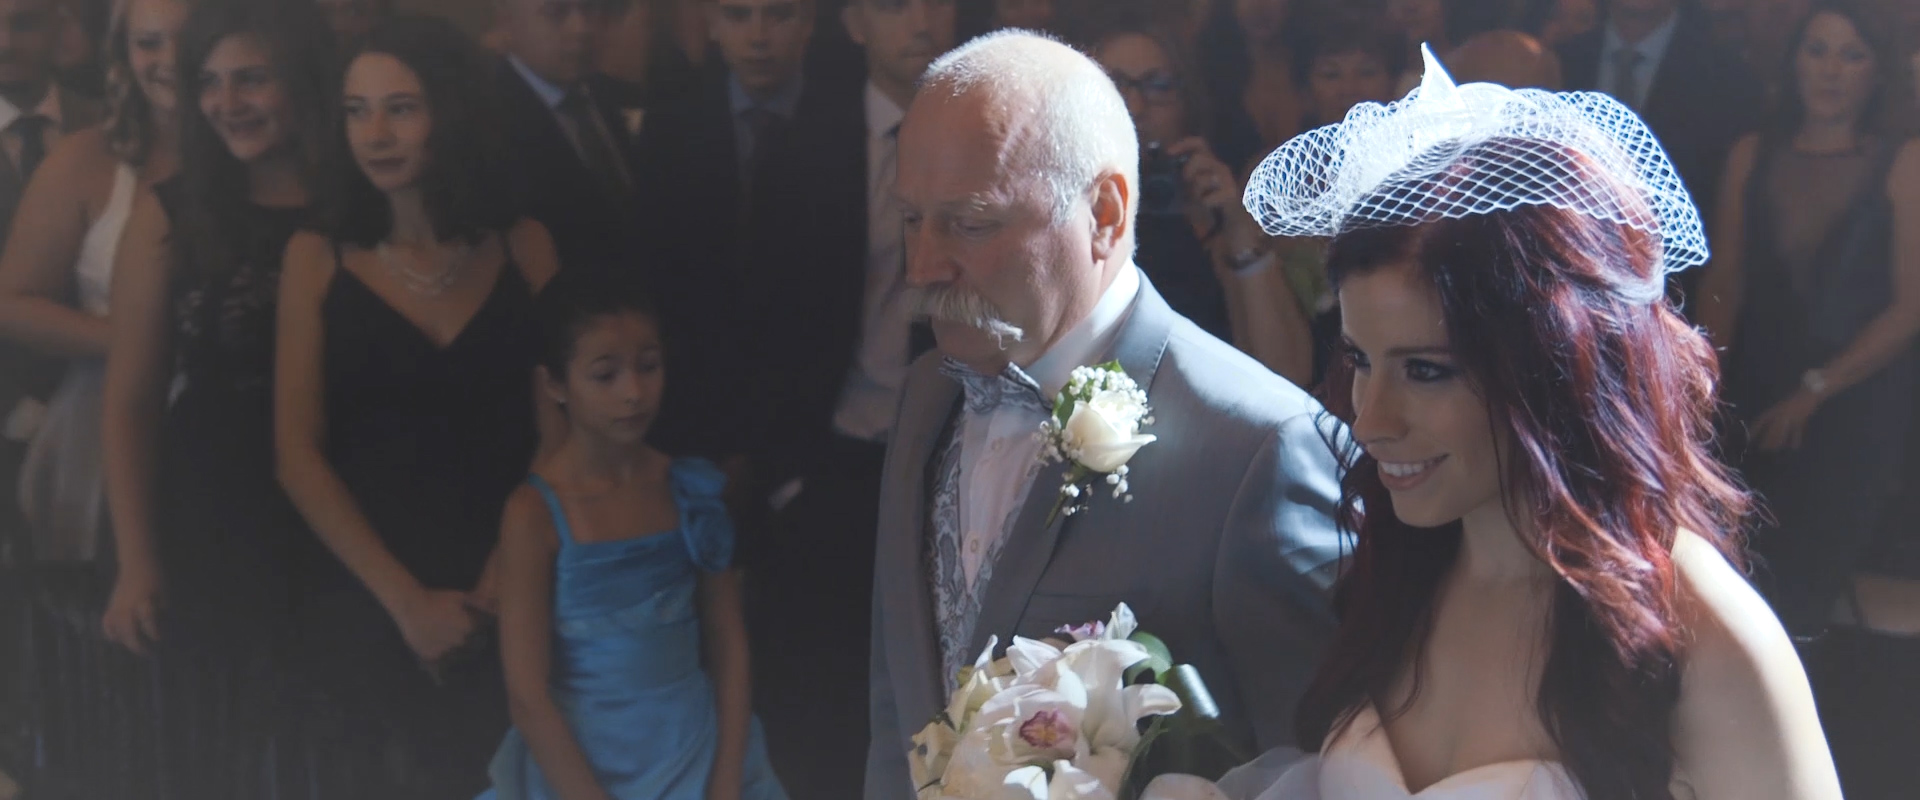 An image of a bride being walked down the aisle by her father; taken from a Toronto Wedding Video